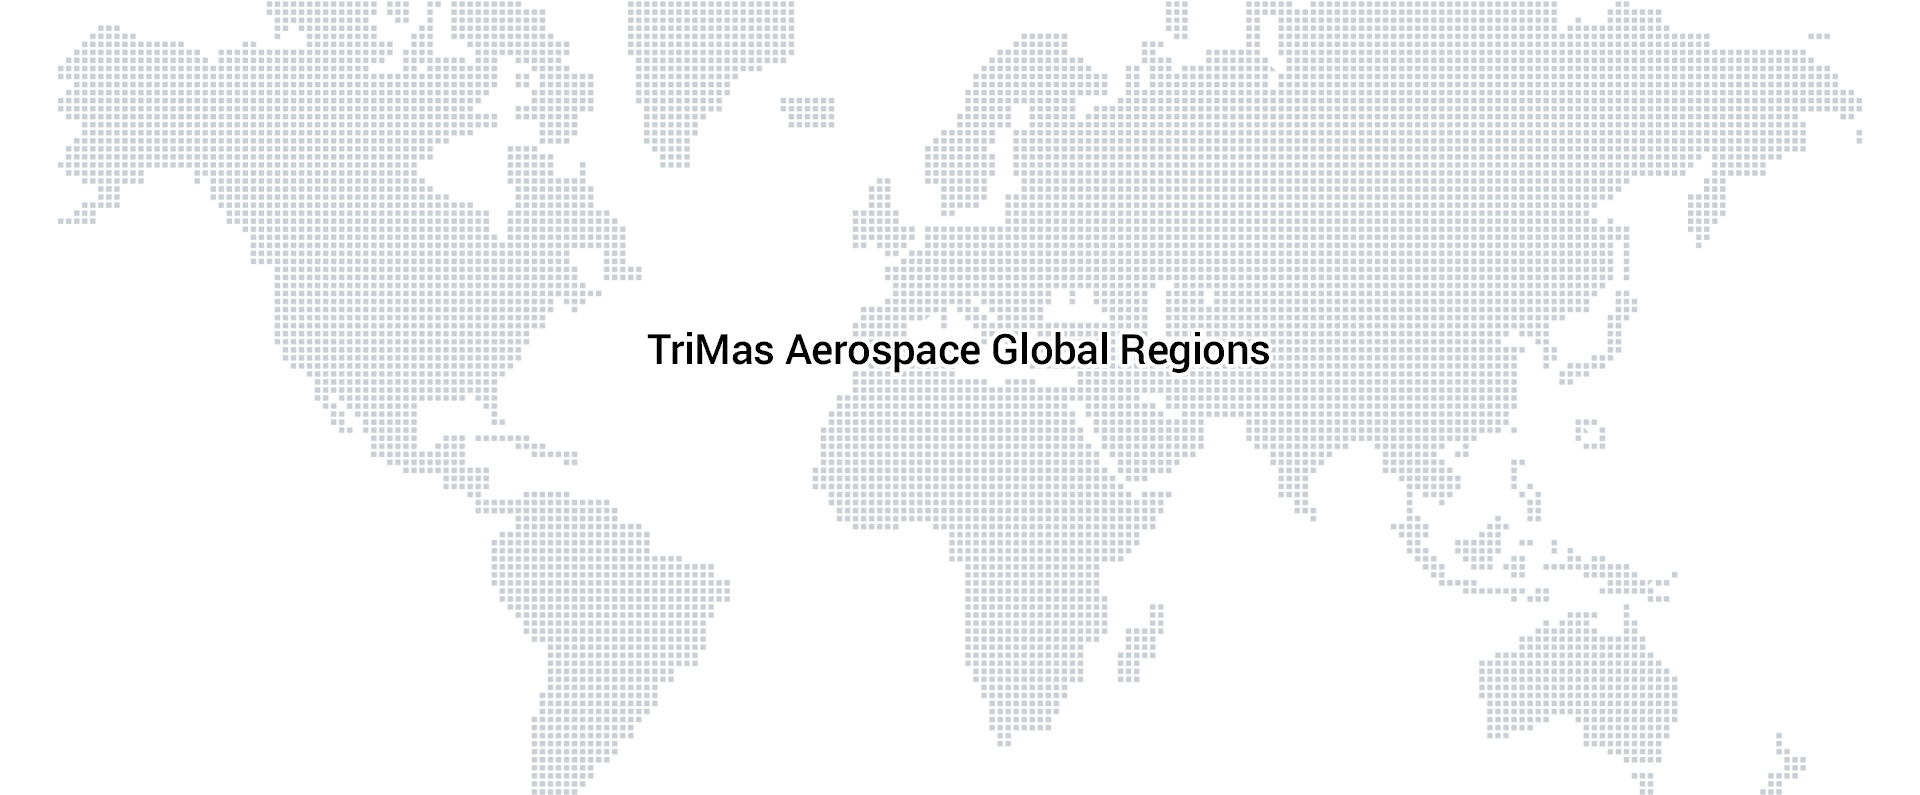 TriMas Aerospace Global Regions map